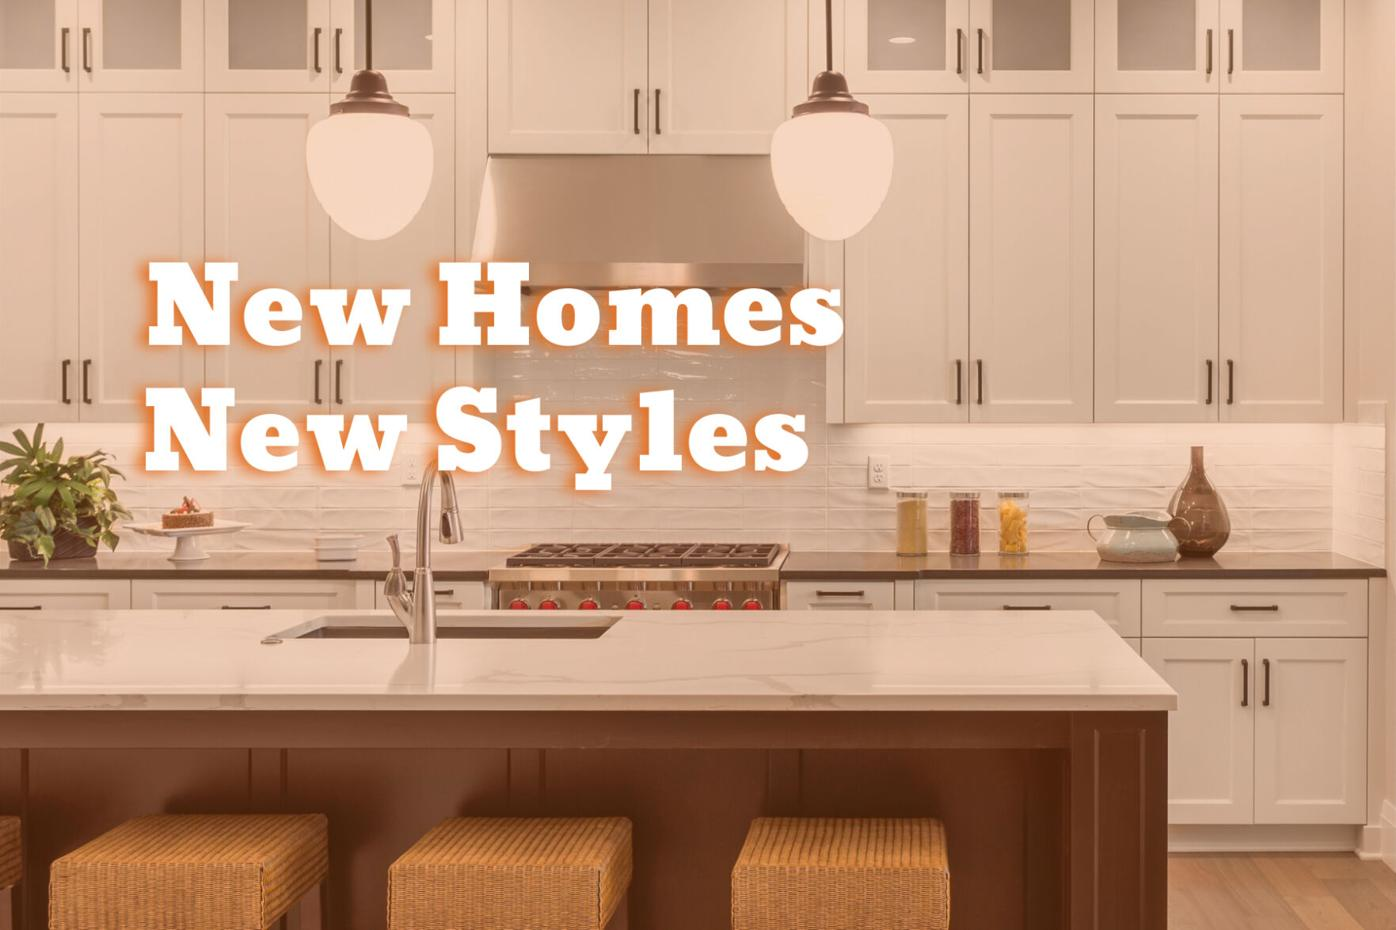 New Homes New Styles